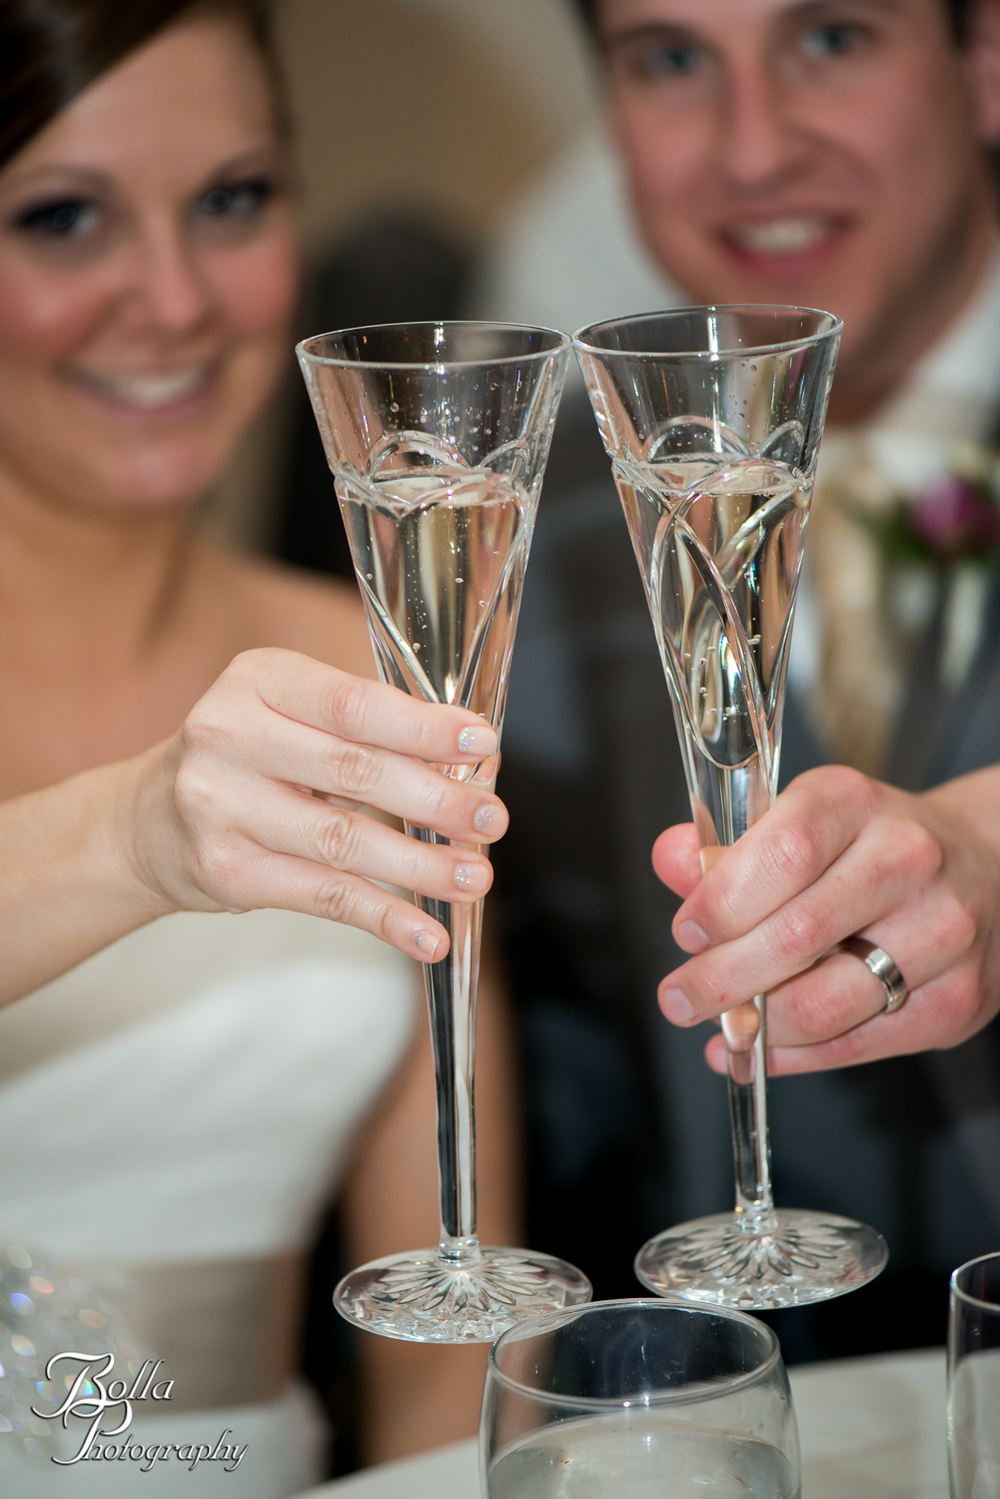 Bolla_Photography_St_Louis_wedding_photographer_Villa_Maire_Winery-0486.jpg